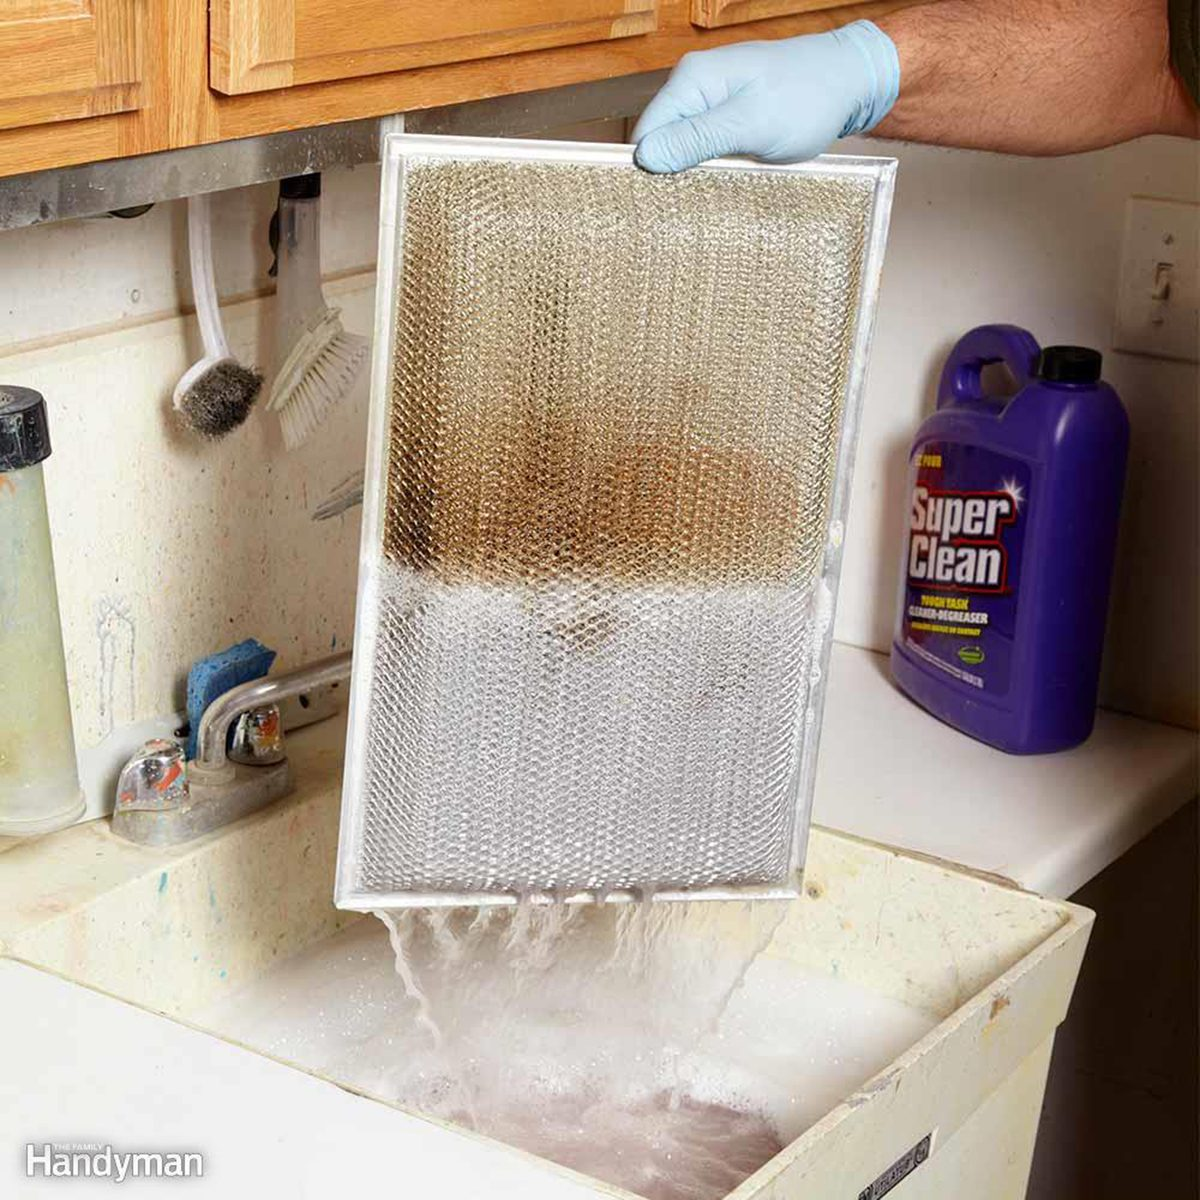 Cleaning grease filters